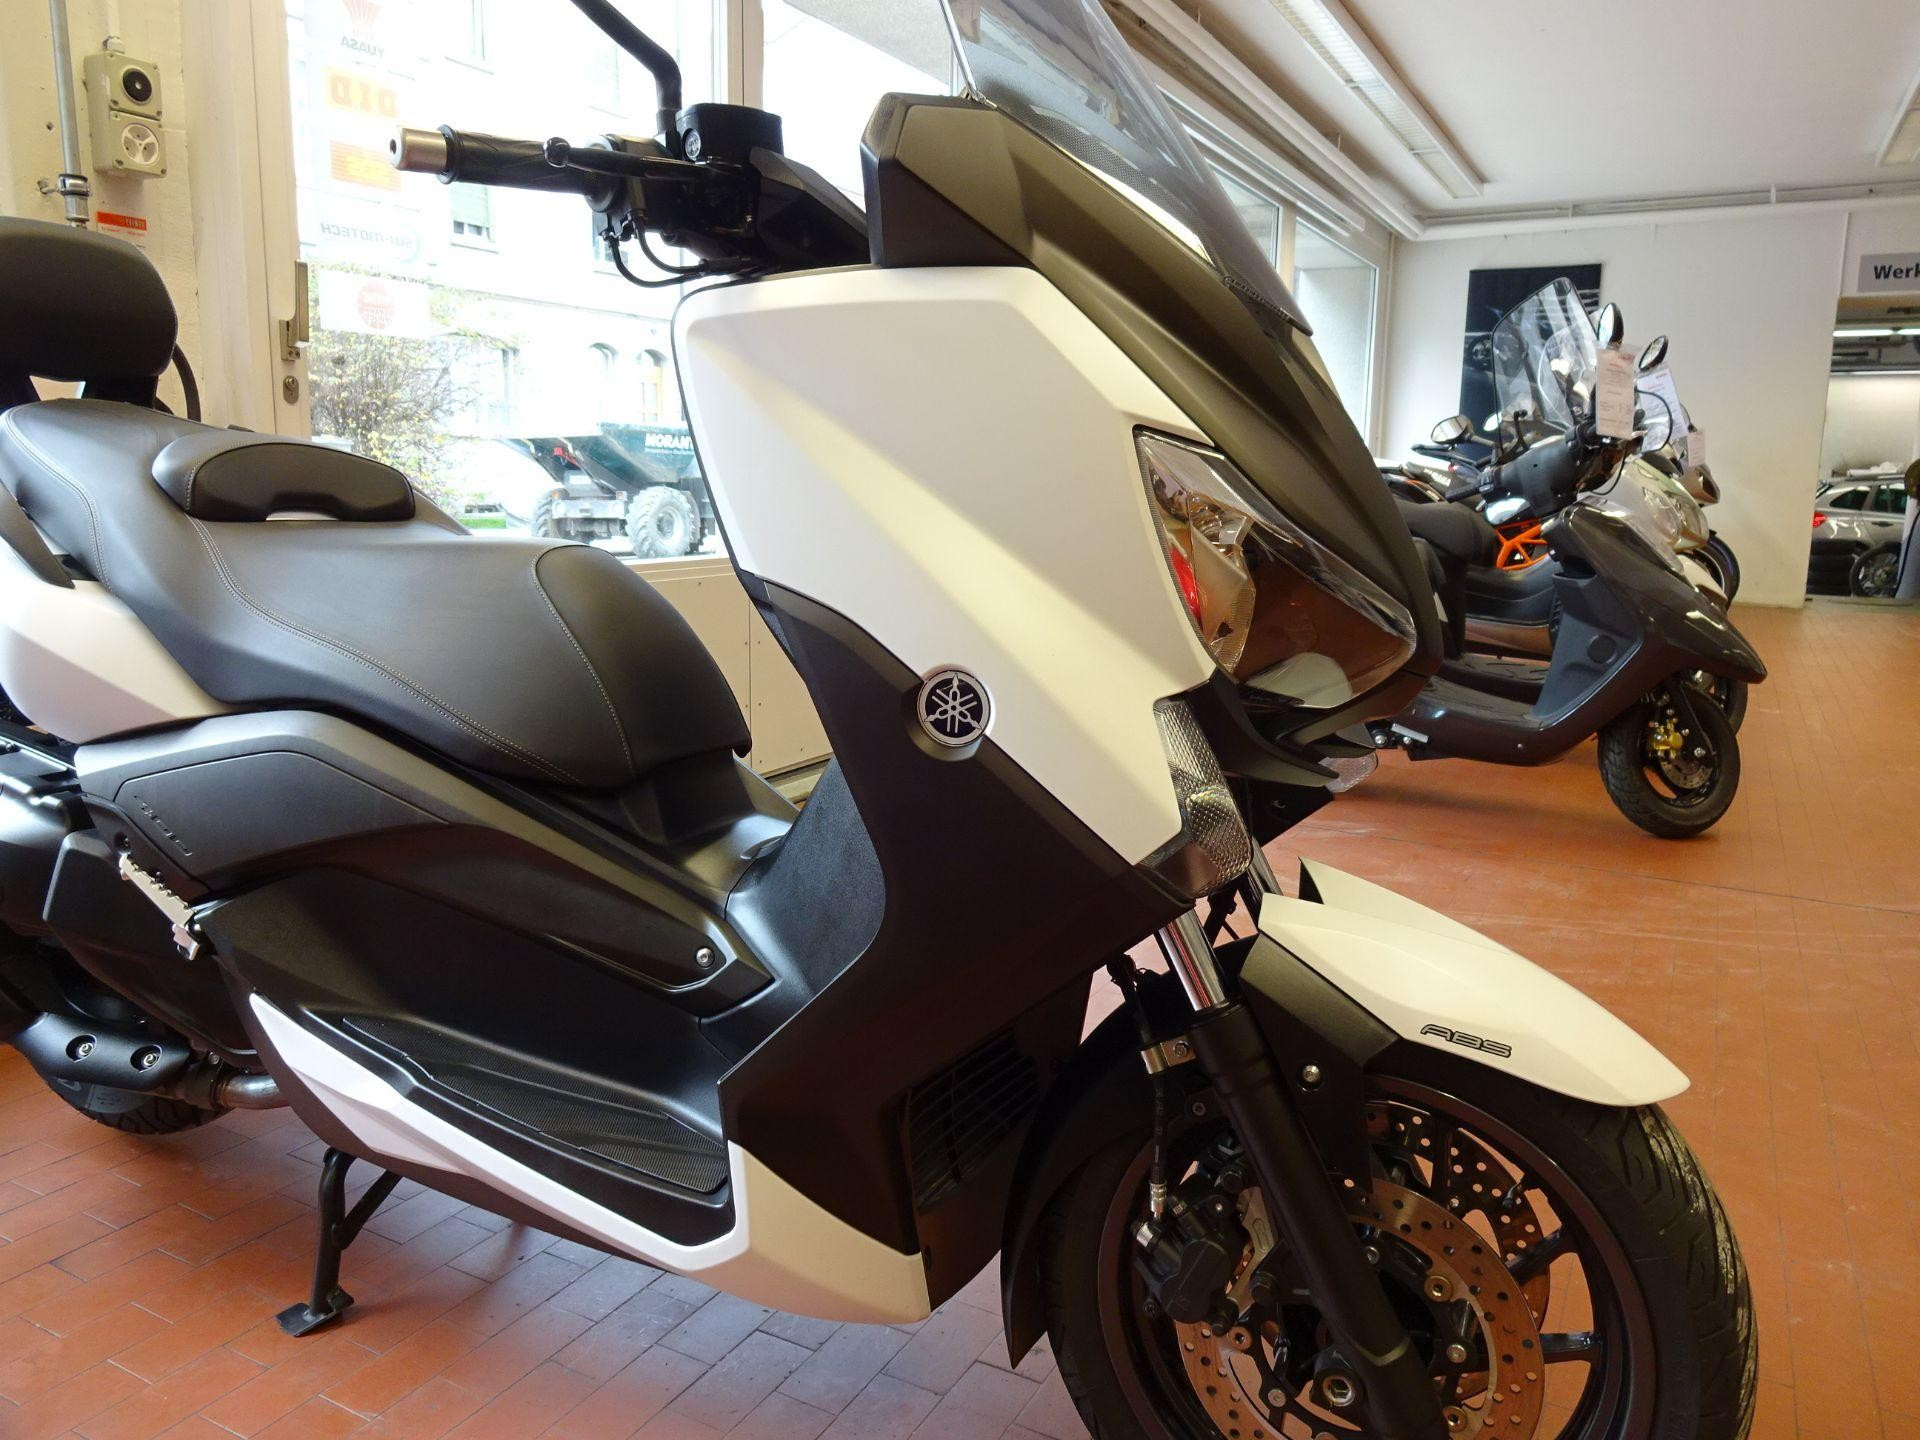 motorrad occasion kaufen yamaha yp 400 ra x max abs stahlmoto ag st gallen. Black Bedroom Furniture Sets. Home Design Ideas